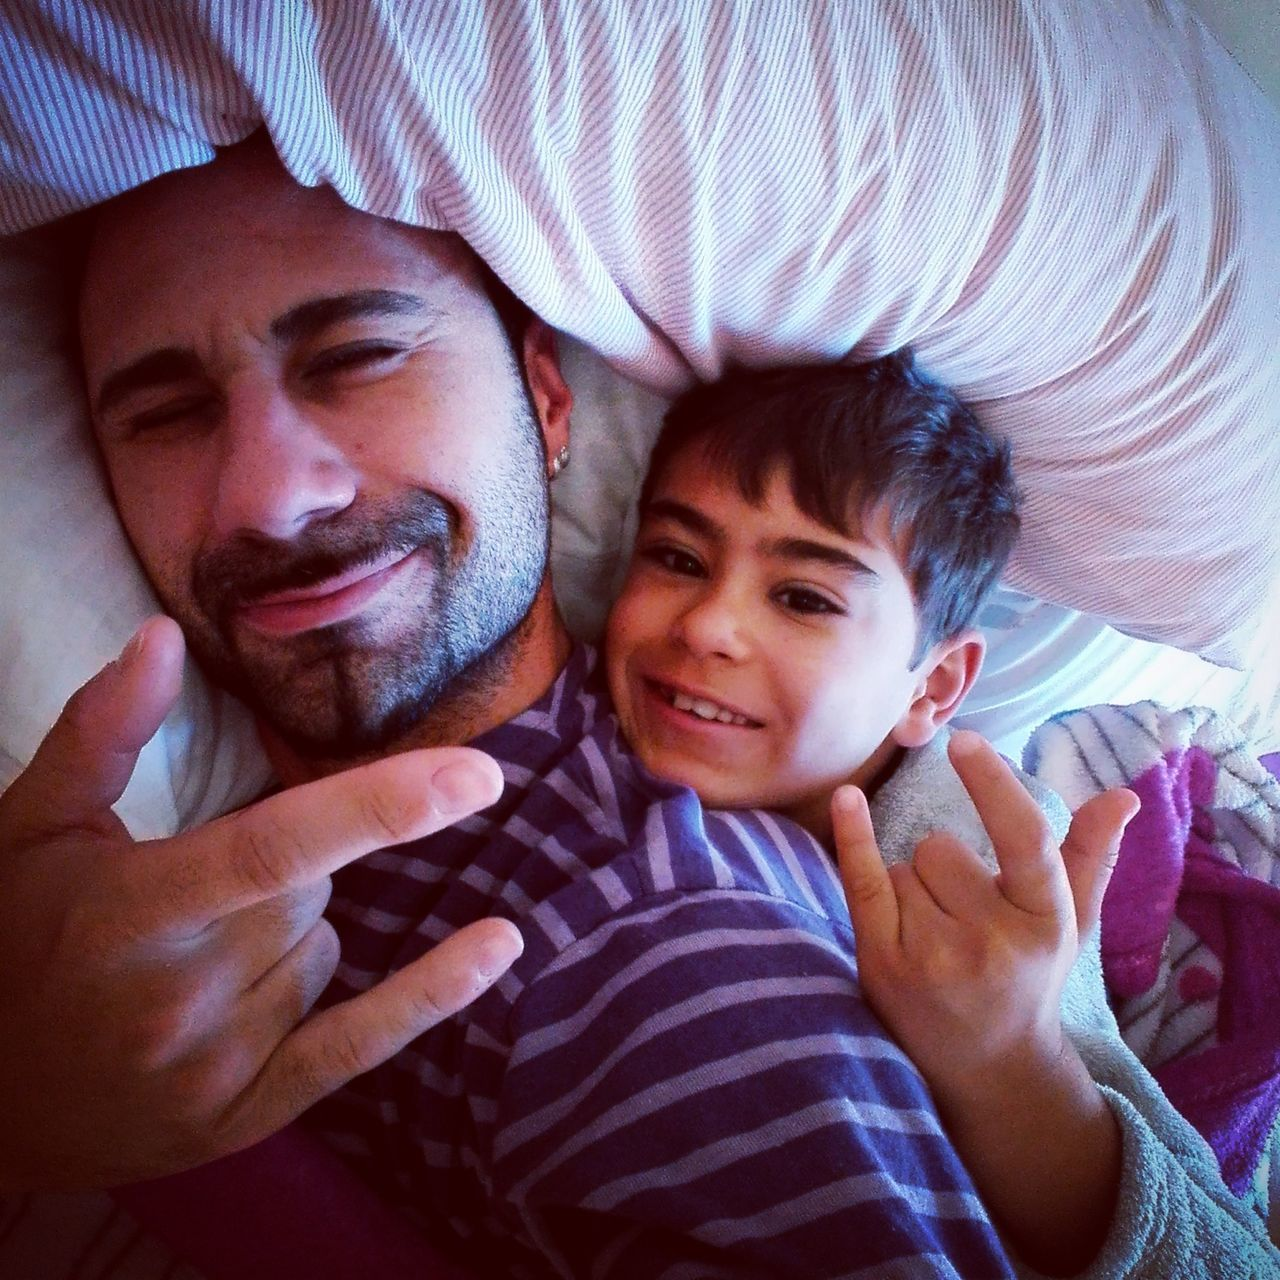 Portrait Of Man With His Son Gesturing Horn Sign While Lying On Bed